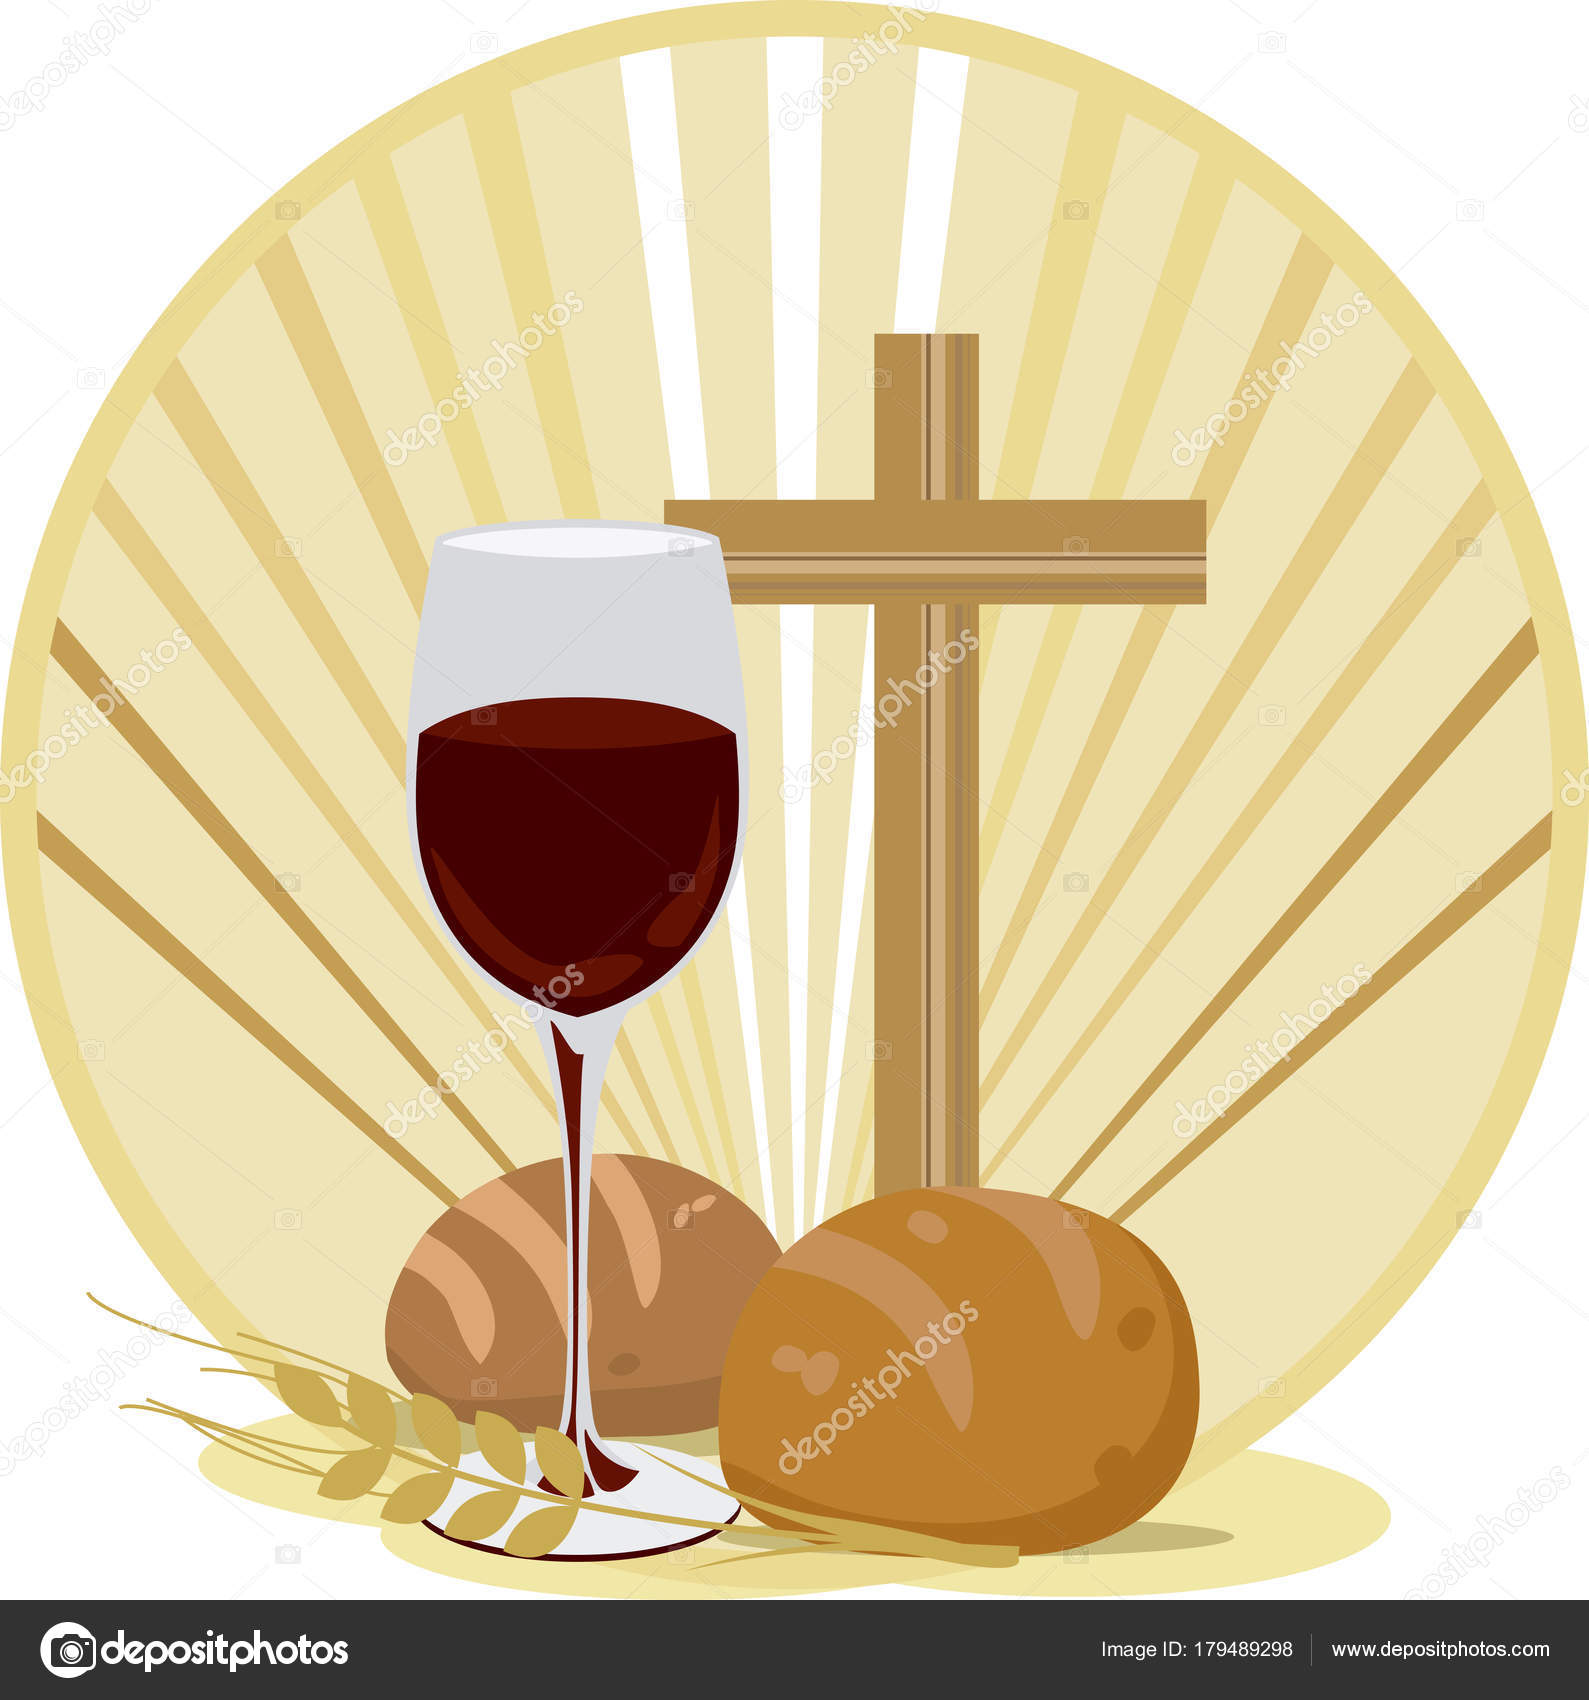 Hhsunday likewise Stock Illustration People Finding Christianity Religion Faith Large Crowd Walking To Forming Shape Cross White Image49768063 besides Friday April 14 2018 further Nach Dem Kirchentag Kirchen In Deutschland in addition Stock Image Large Stone Cross White Background Image8697311. on easter jesus